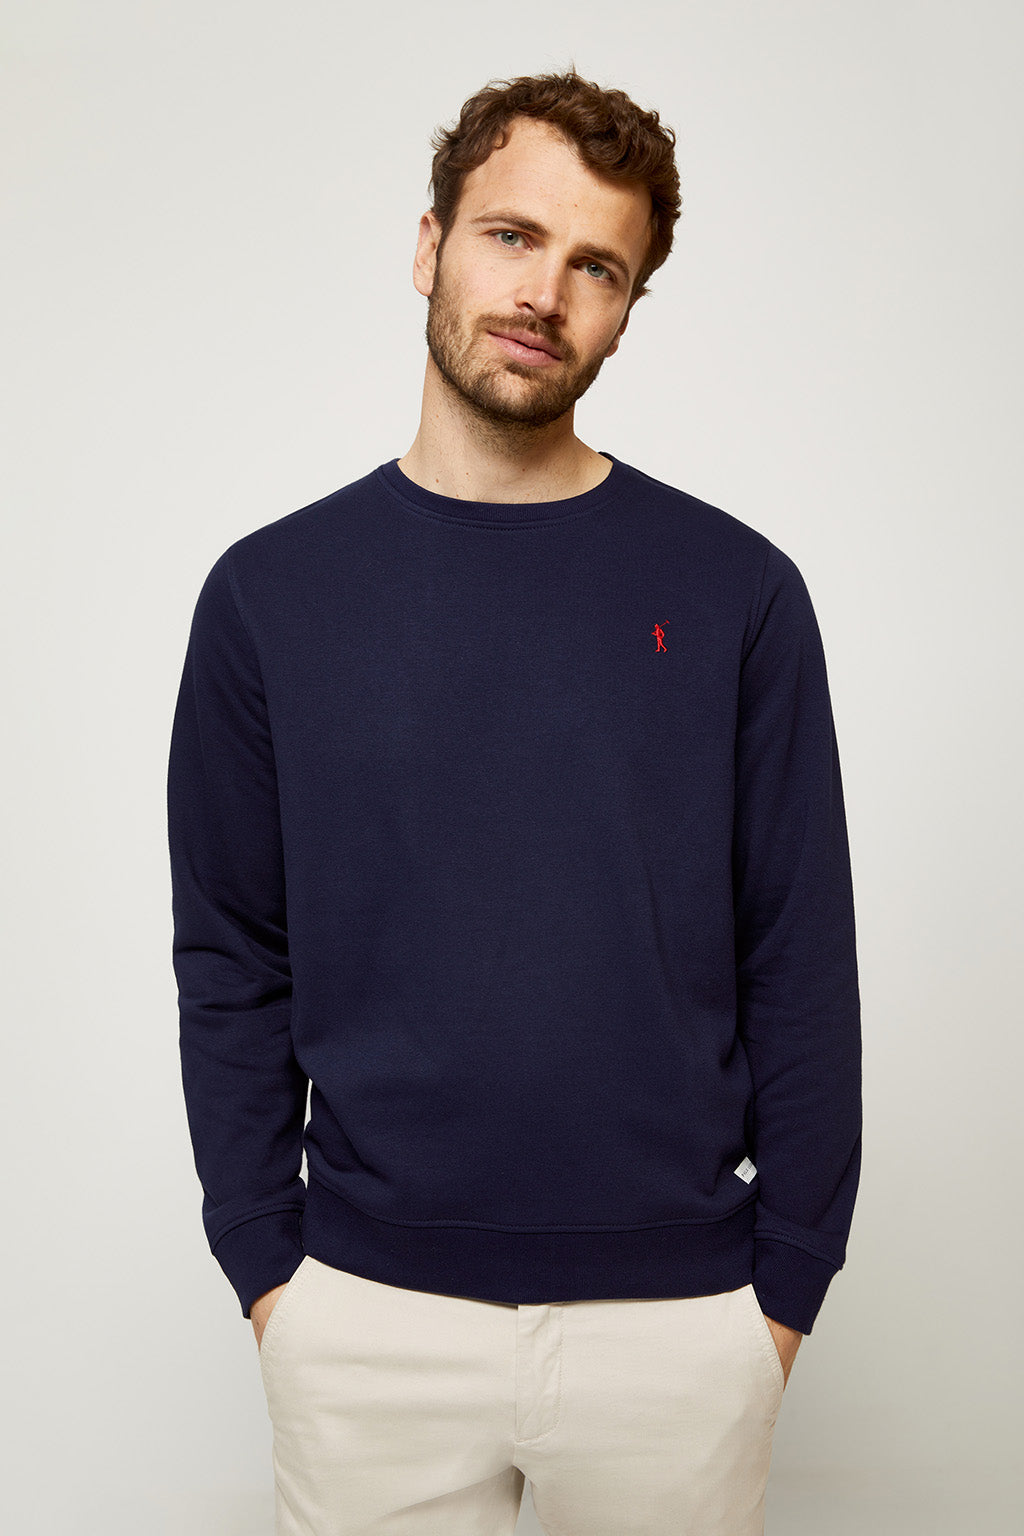 Navy blue round neck organic sweatshirt